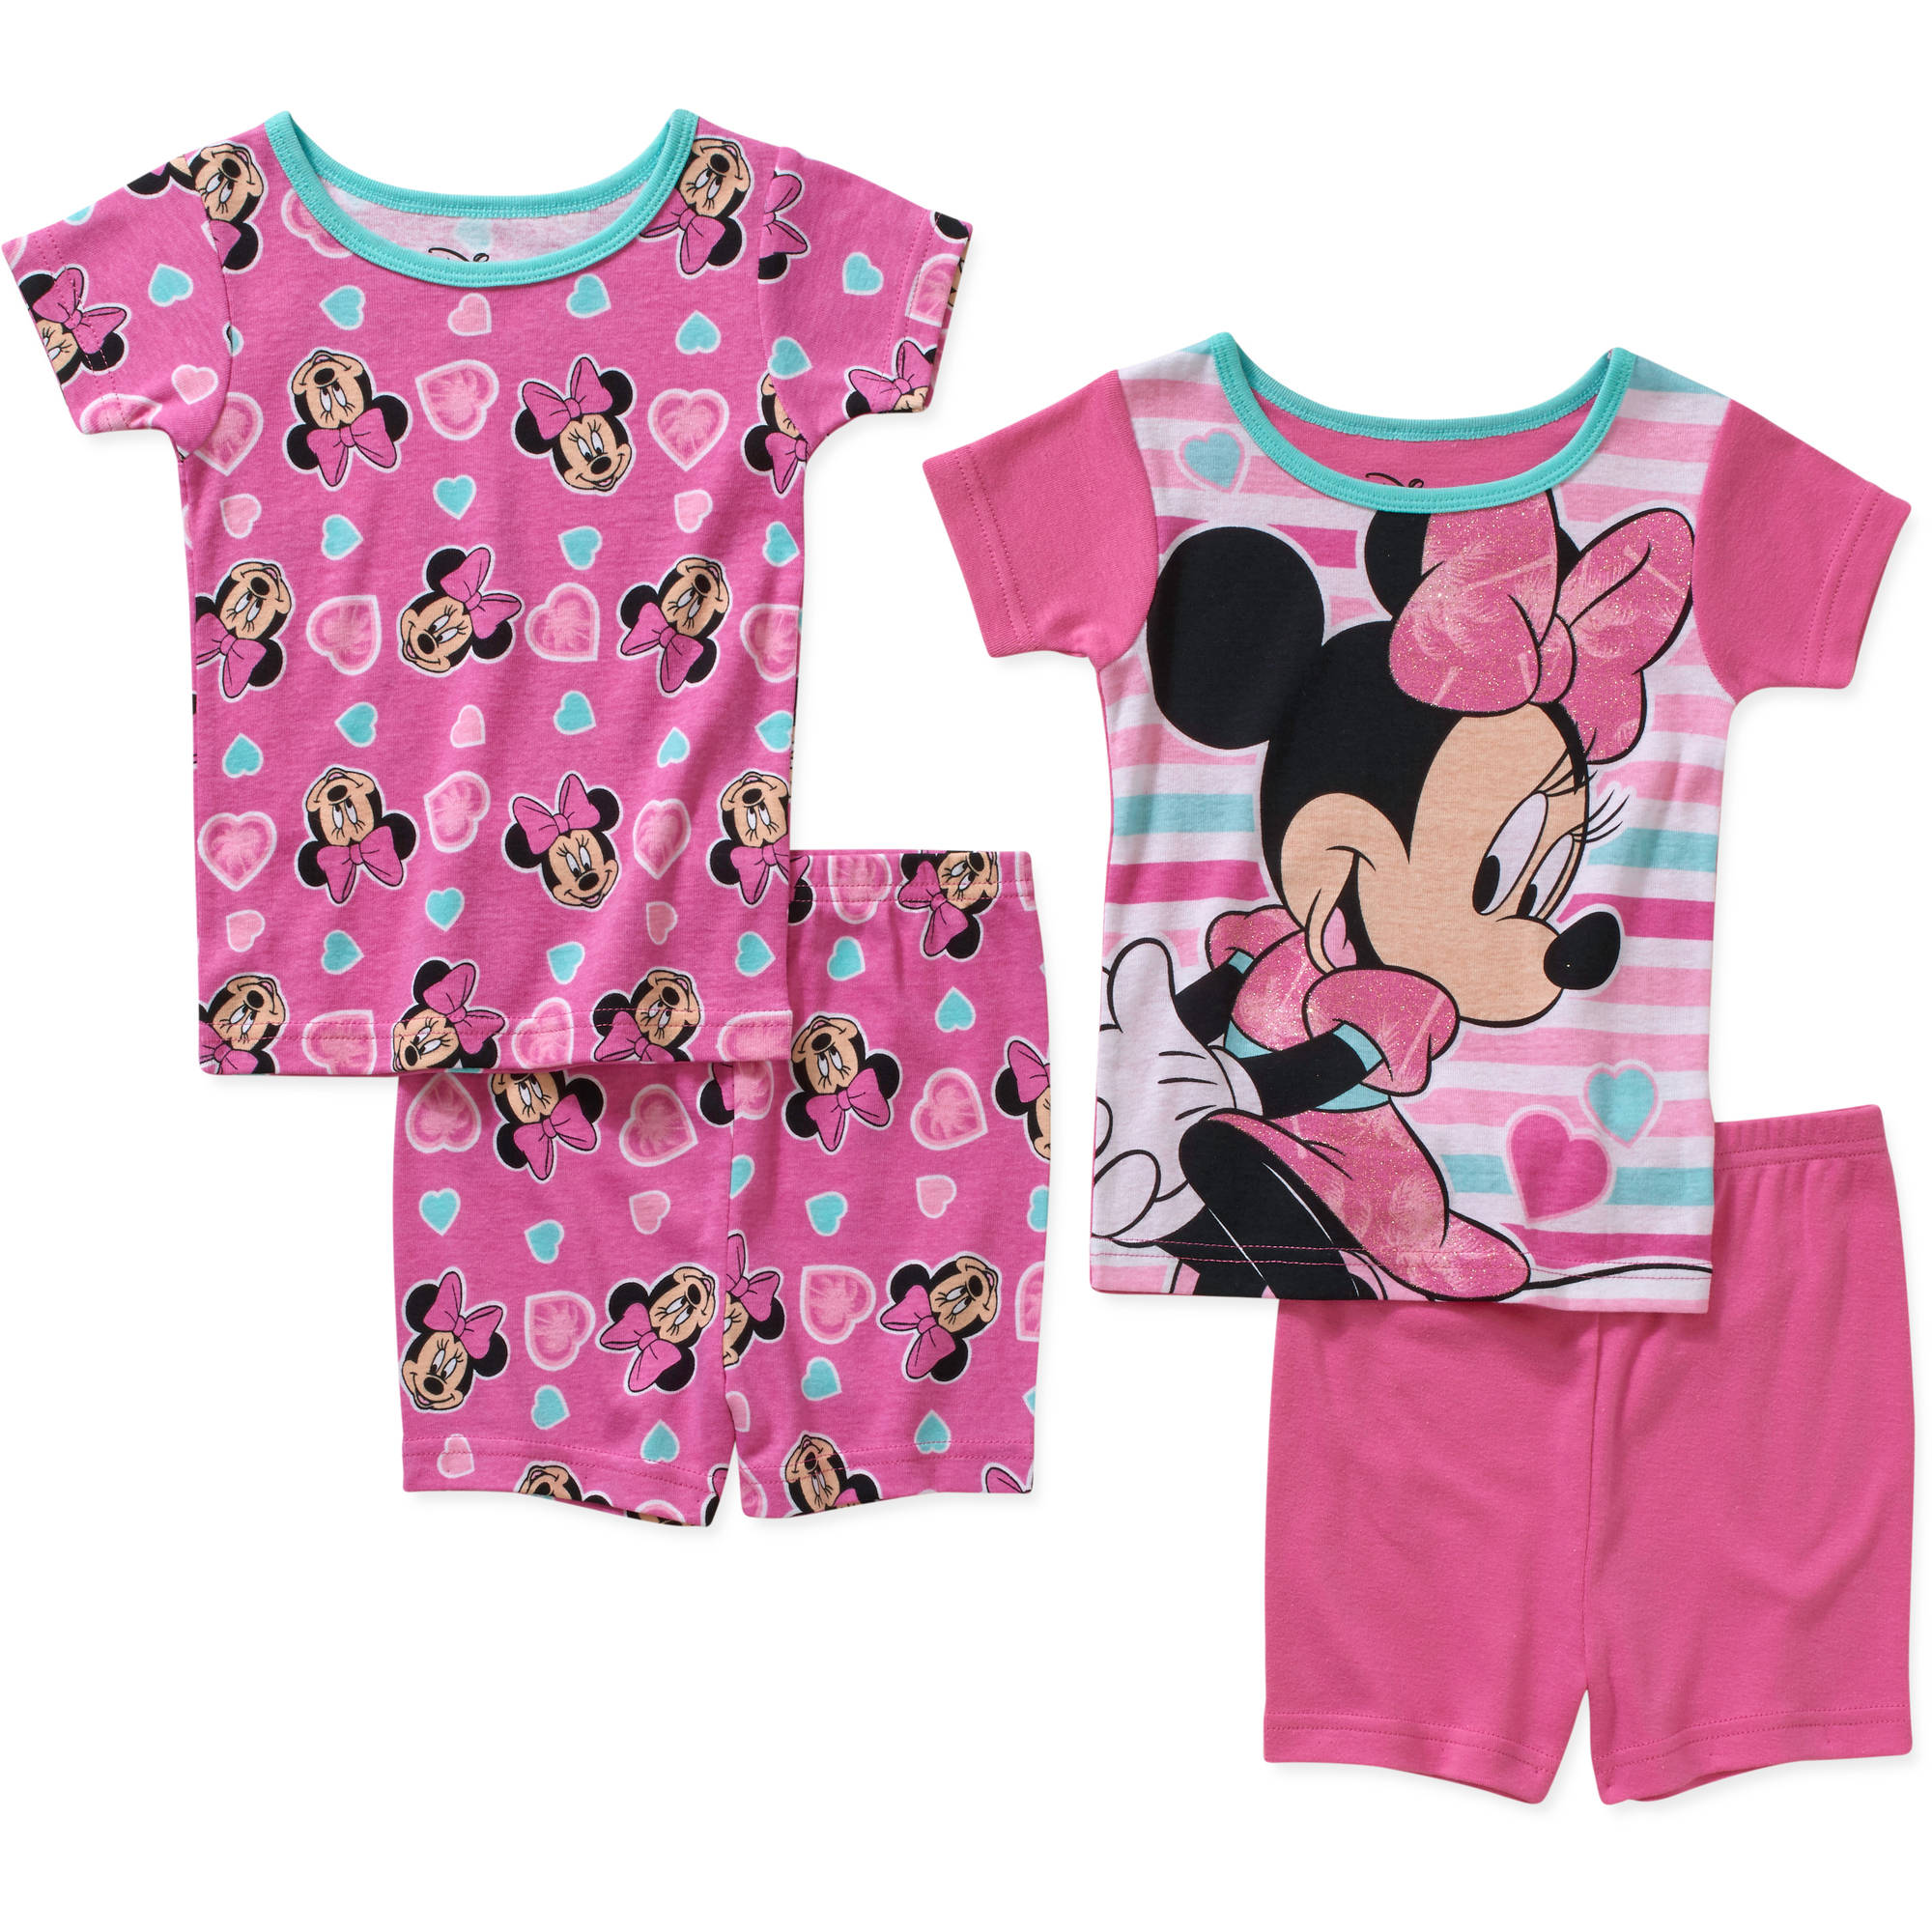 Minnie Mouse Toddler Girl Cotton Tight Fit Short Sleeve Sleep Set, 4-Pieces